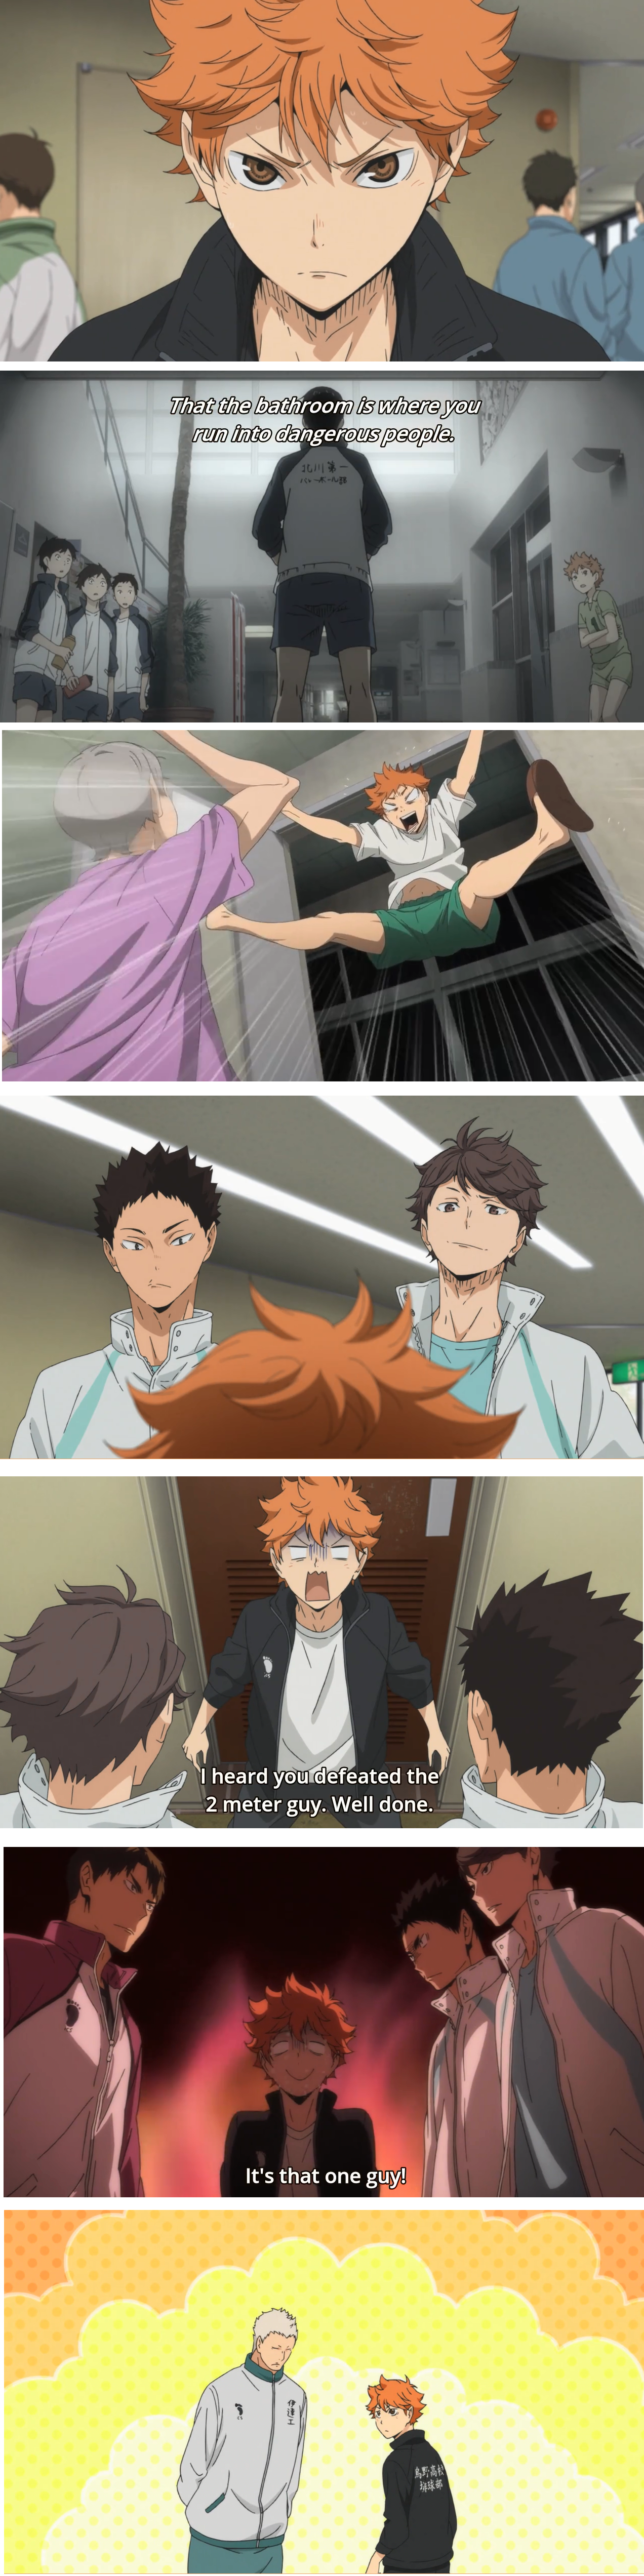 Hinata Shouyou's Bathroom Adventures... xD this needs to be a mini series,the people Hinata encounters on his trips to the bathroom XD